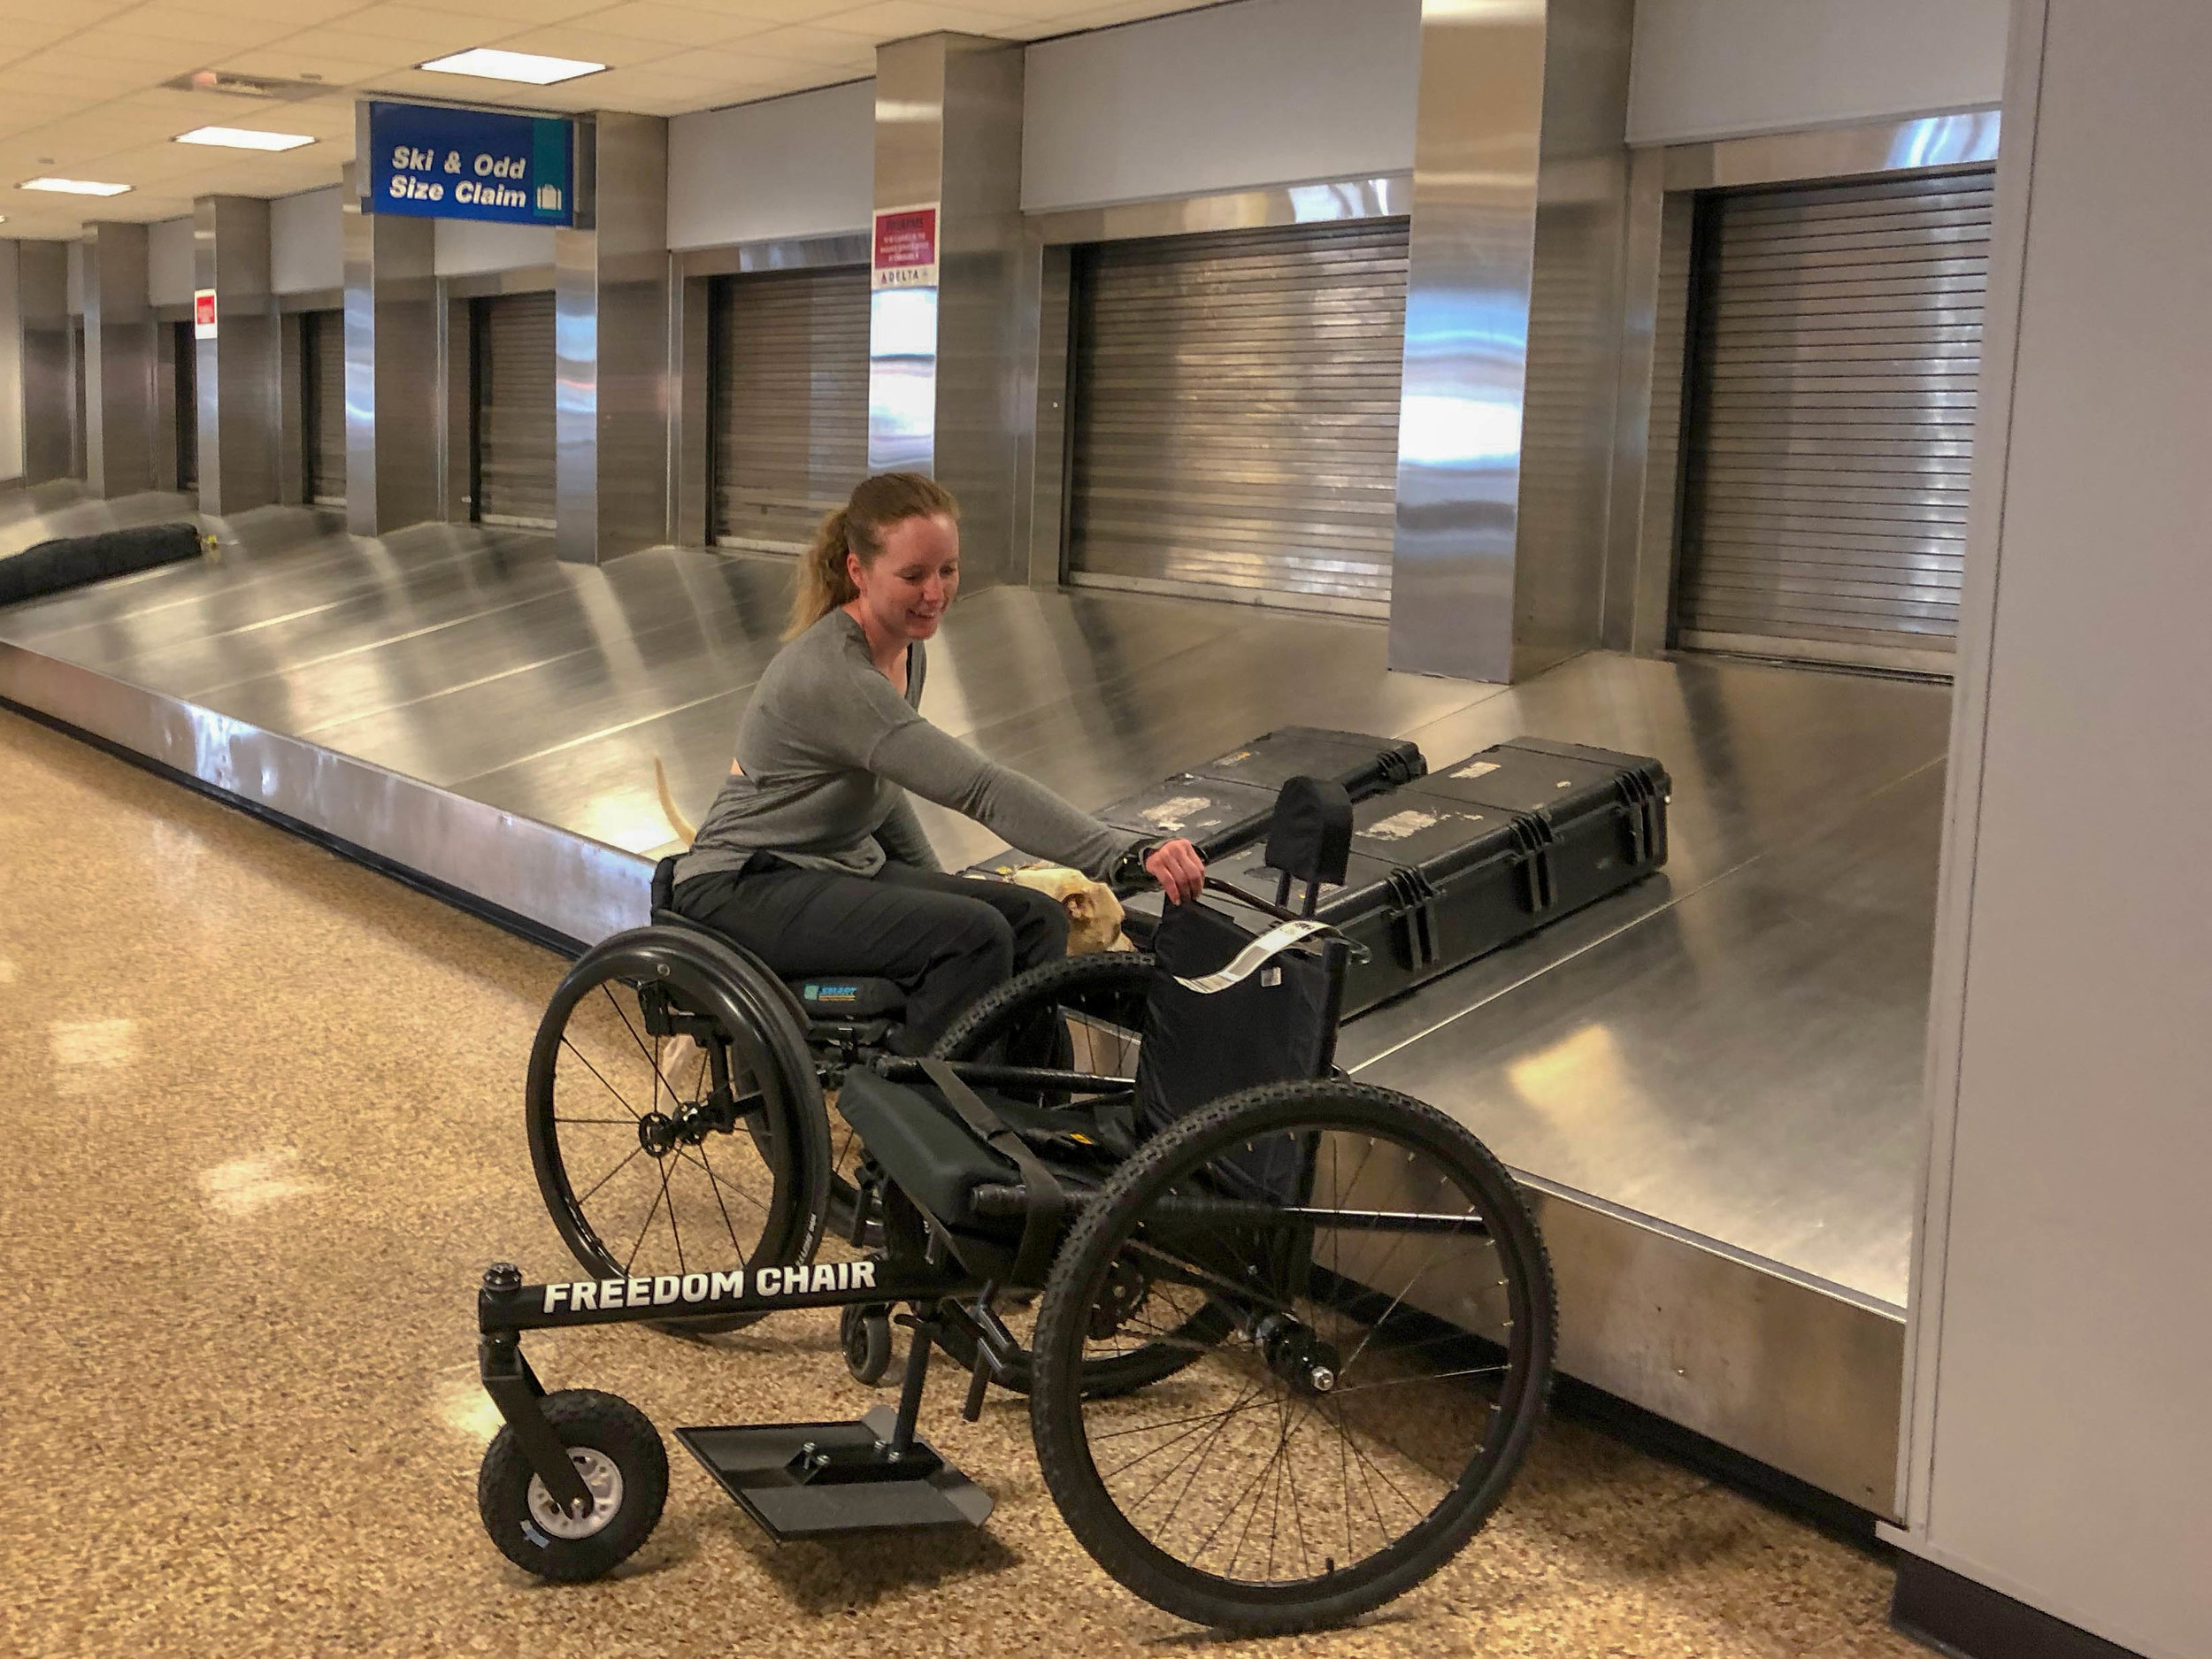 At most airports, your checked GRIT Freedom Chair will arrive in the Odd Size Claim area.